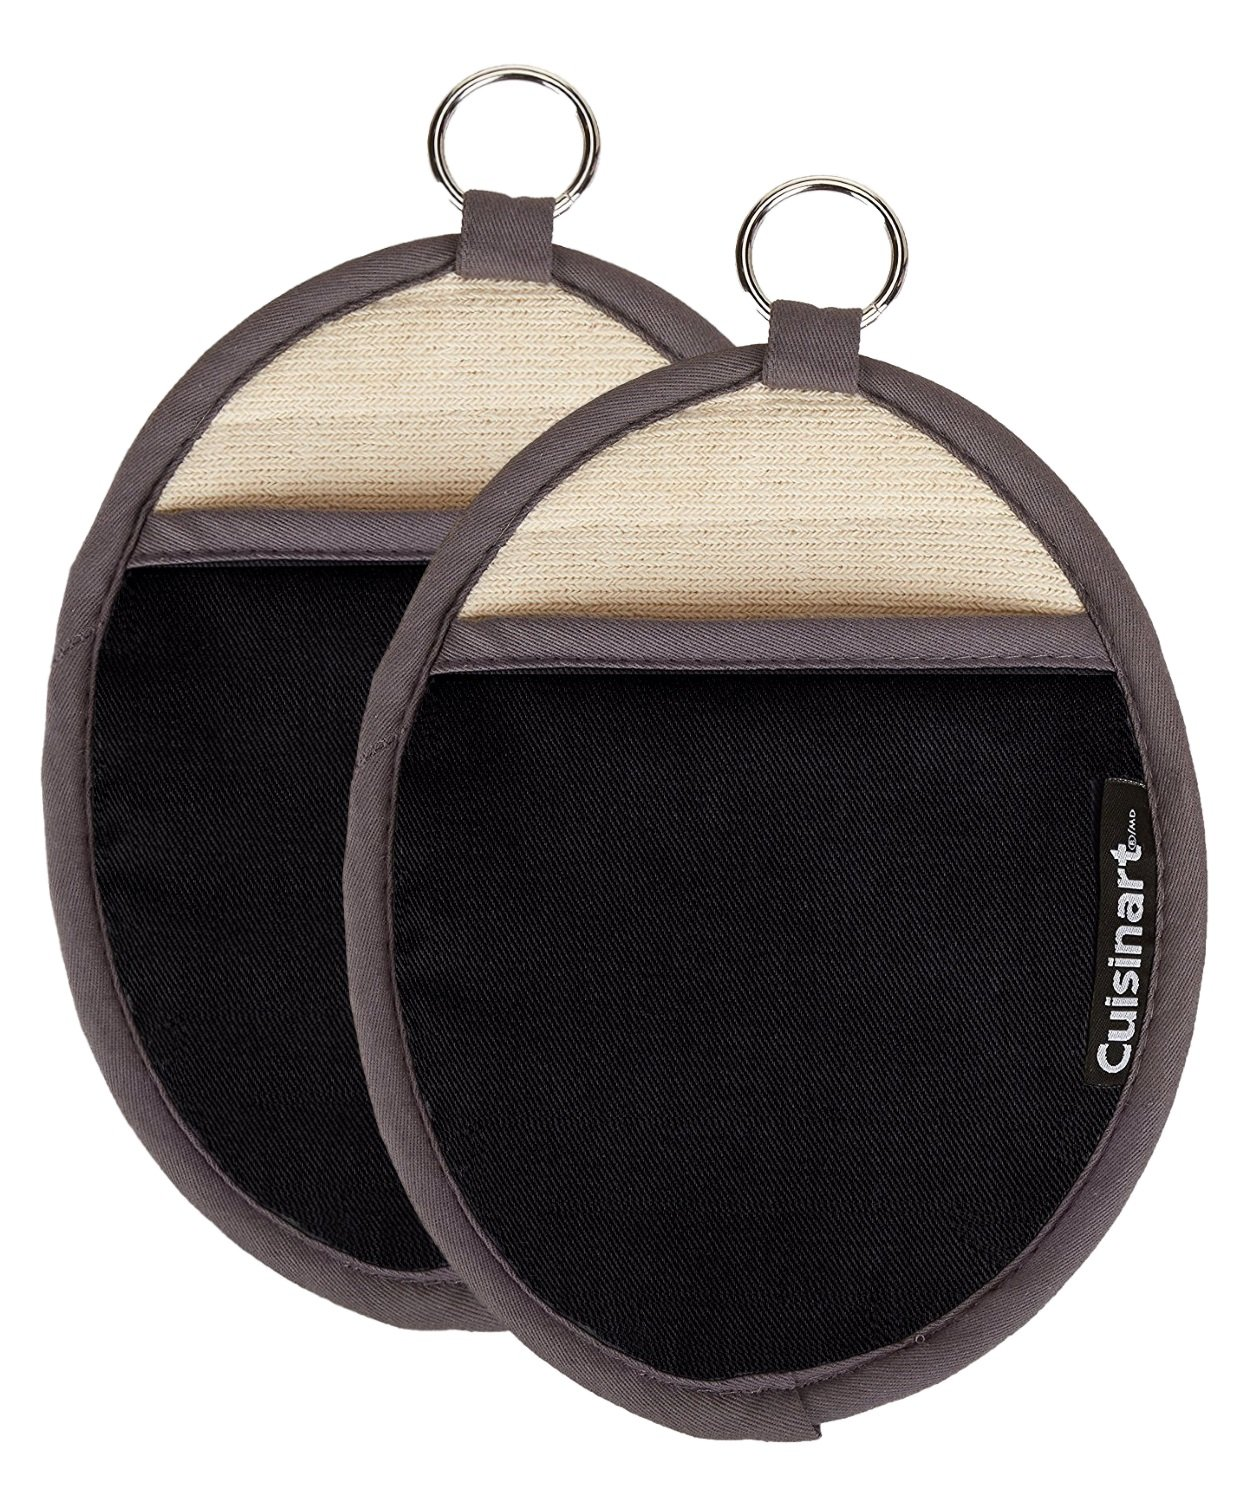 Cuisinart Silicone Oval Pot Holders and Oven Mitts - Heat Resistant, Handle Hot Oven / Cooking Items Safely - Soft Insulated Pockets, Non-Slip Grip and Convenient Hanging Loop- Black, Pack of 2 Mitts